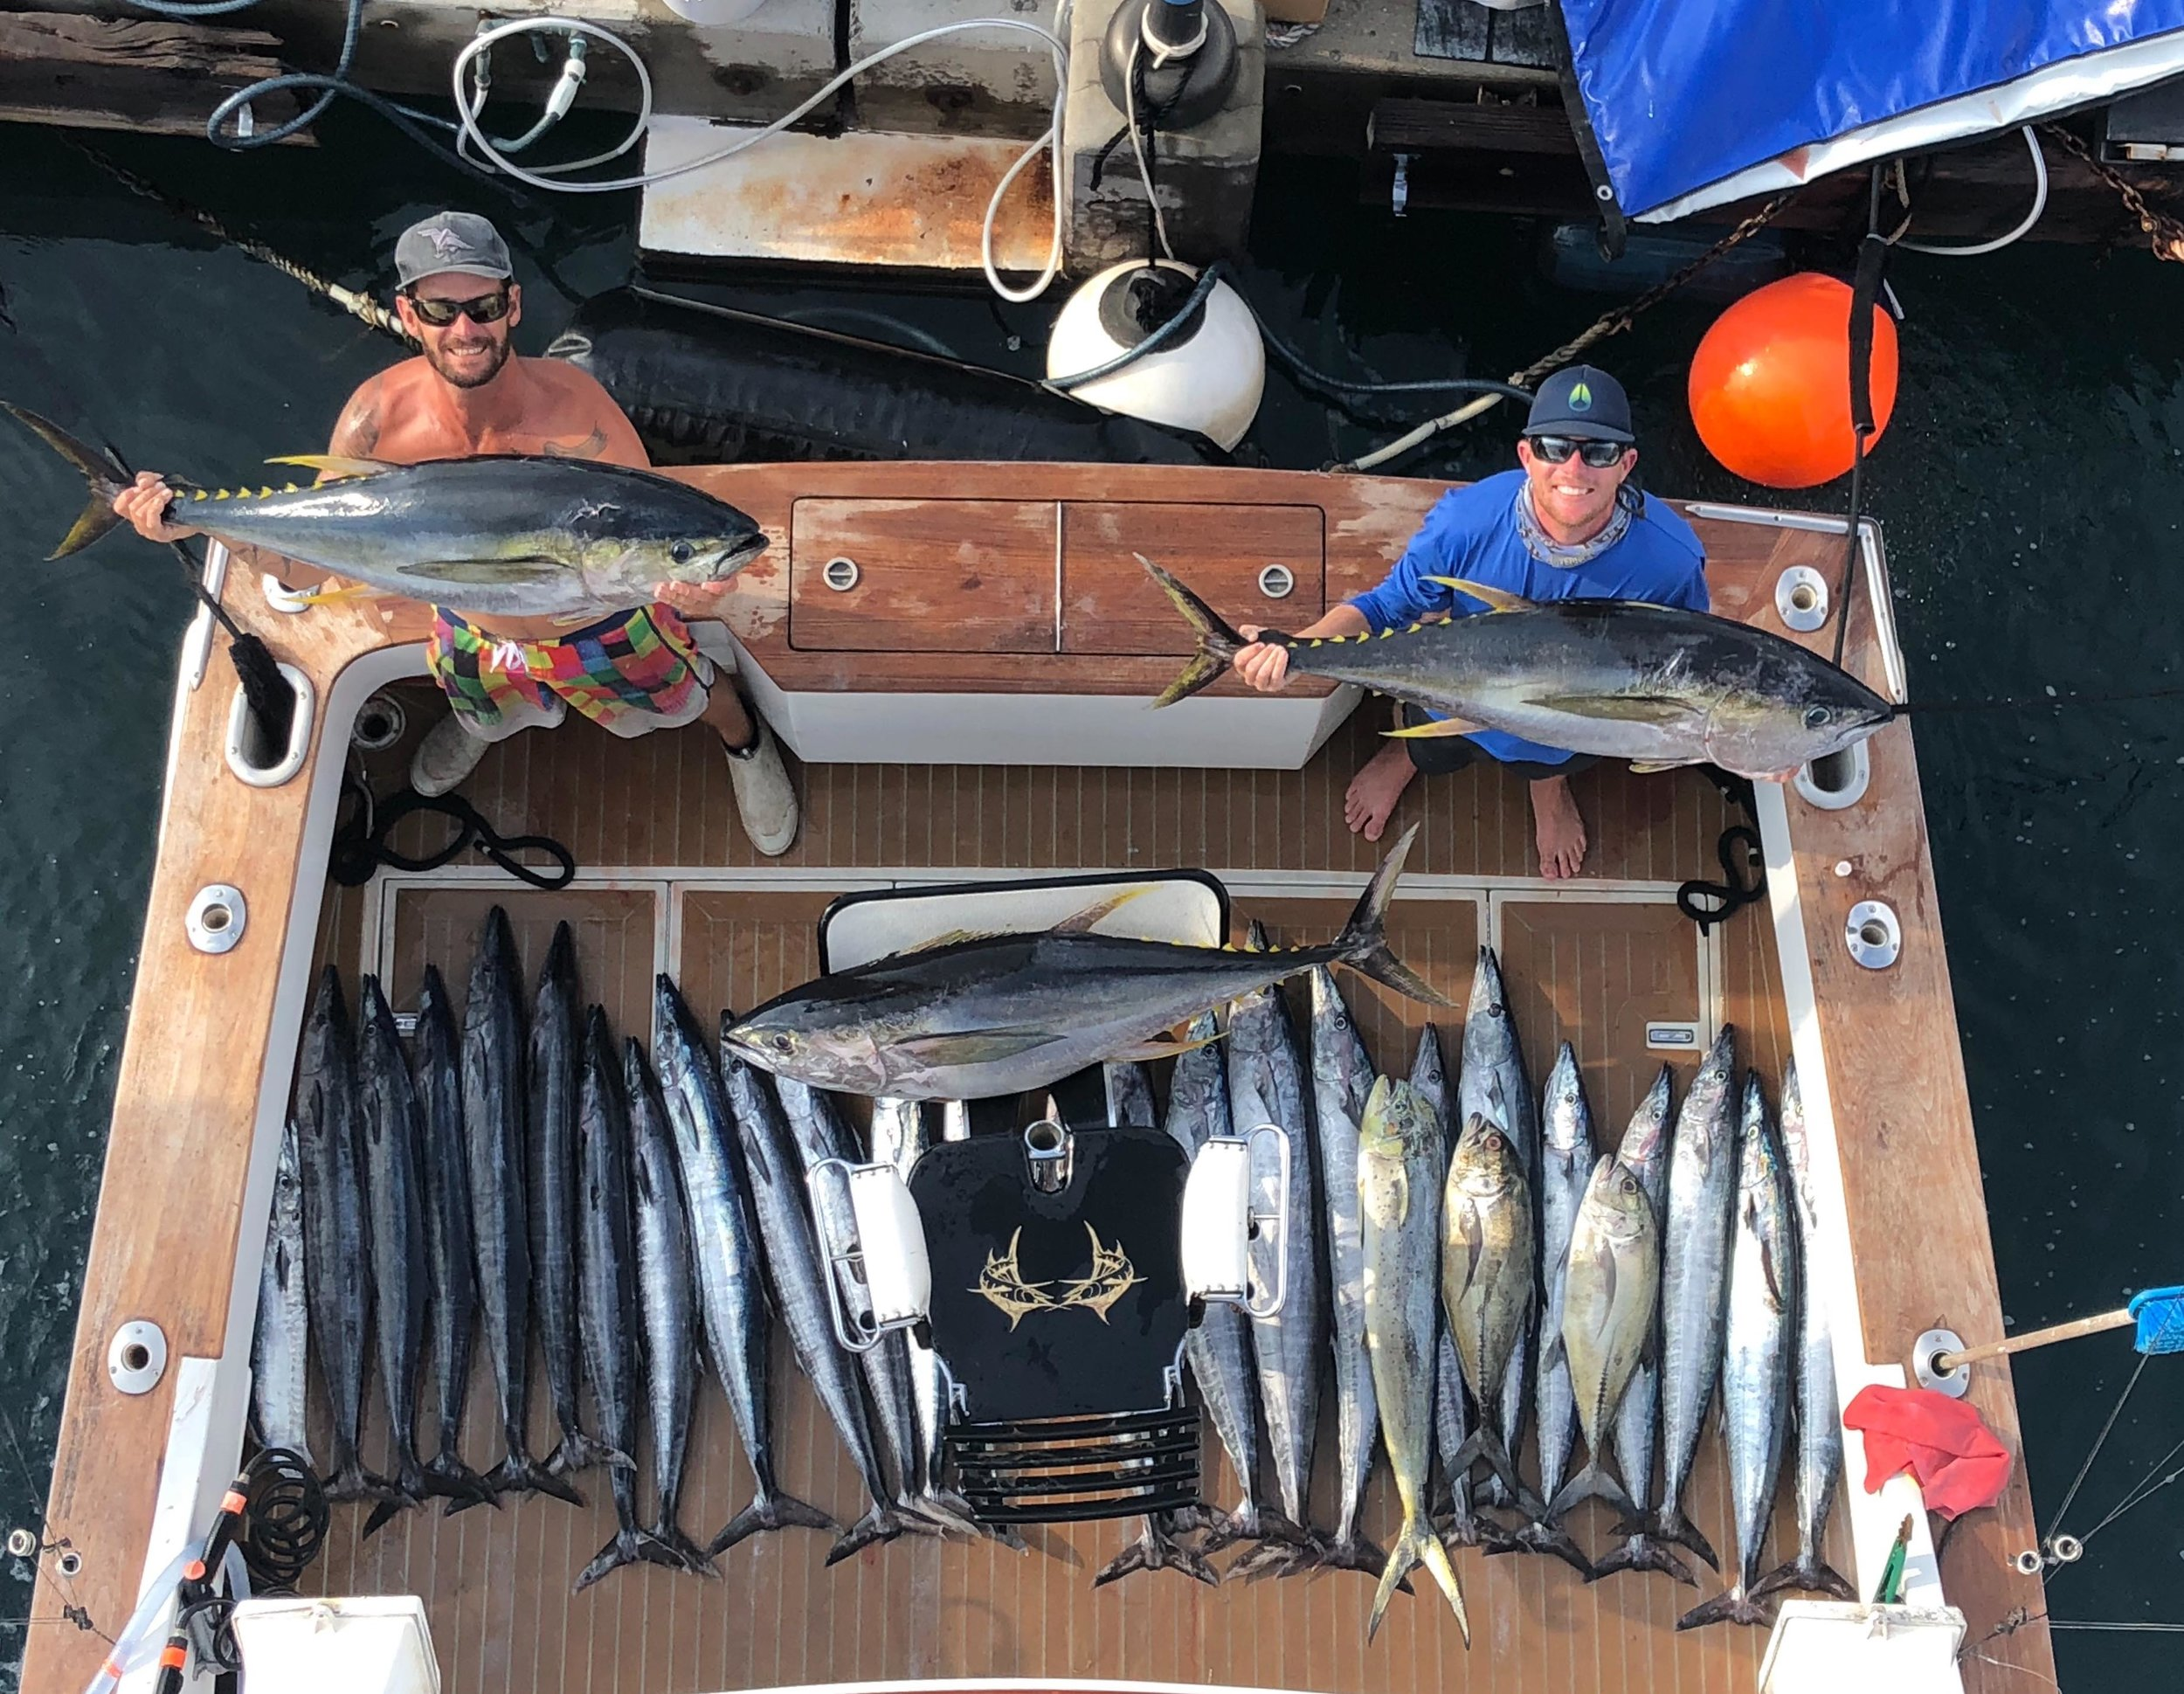 All Day Fishing - BOOKS UP TO: 6 guestsINCLUDES: class 130 & 50 class fishing equipment, light snacks, water, and ice.Kona is one of the best fishing locations in the world and is home to one of the most exciting forms of fishing—Big Island of Hawaii Sports Fishing.Learn more